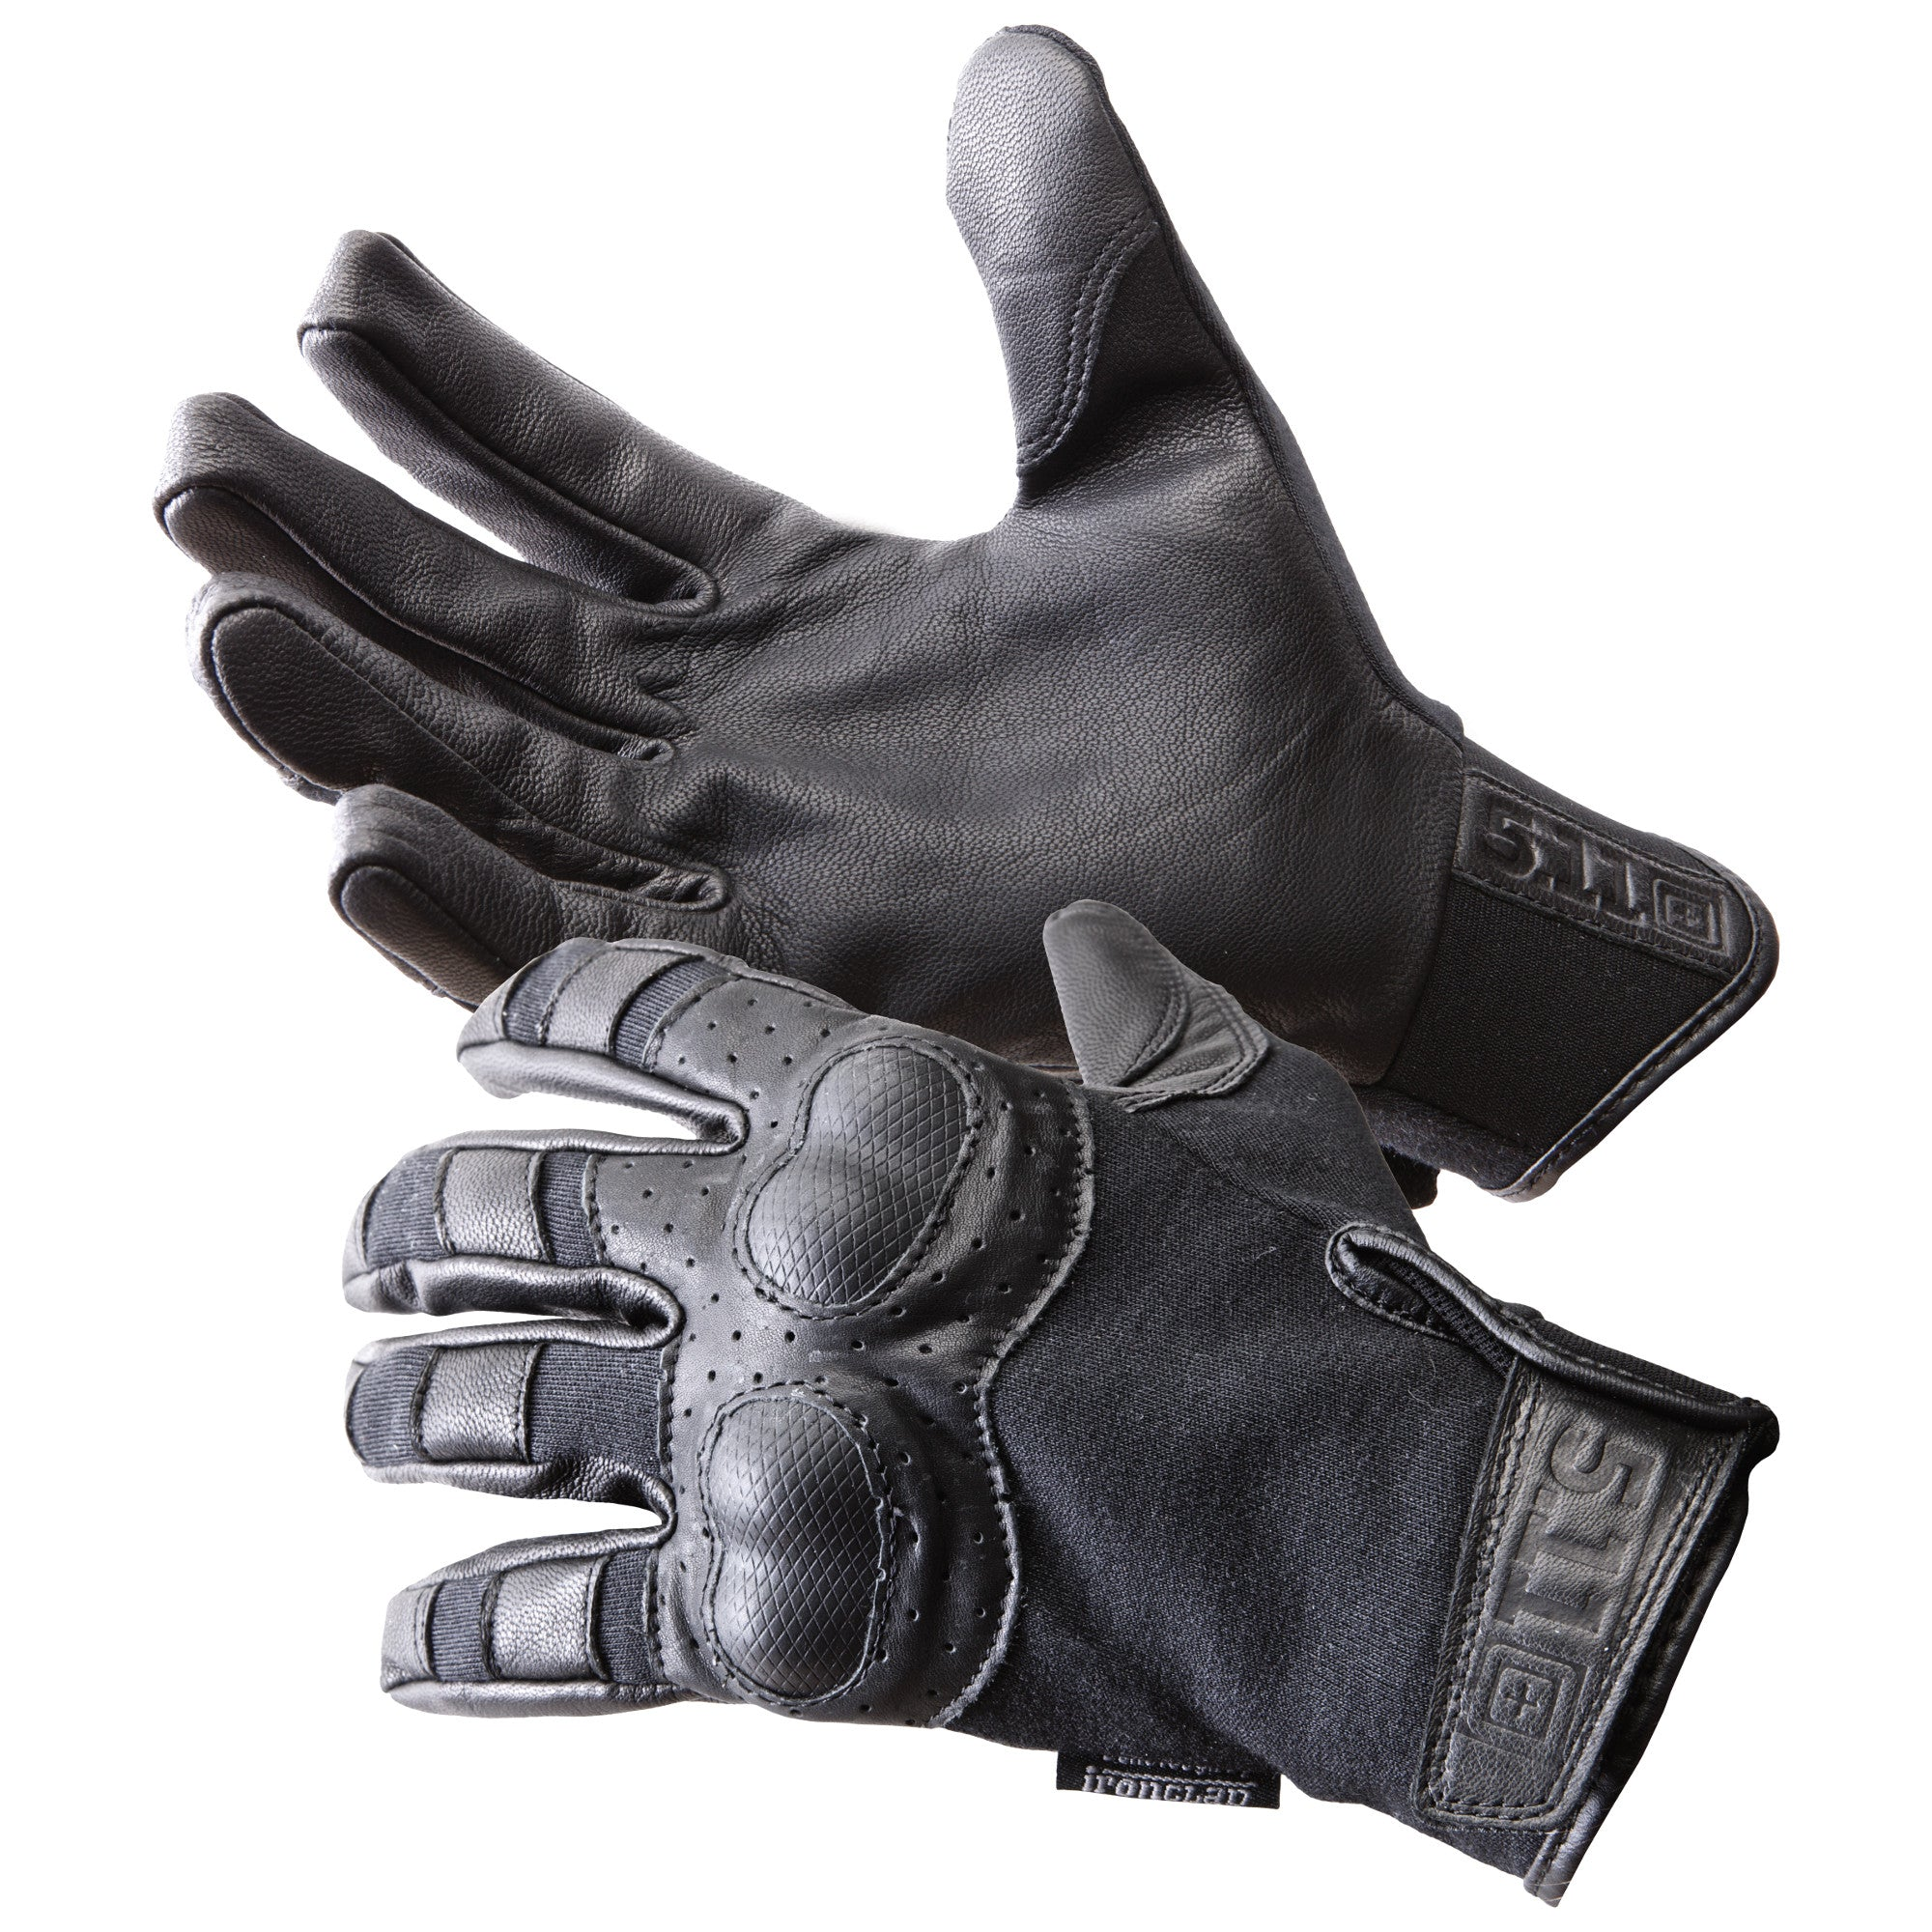 Hard Time Gloves